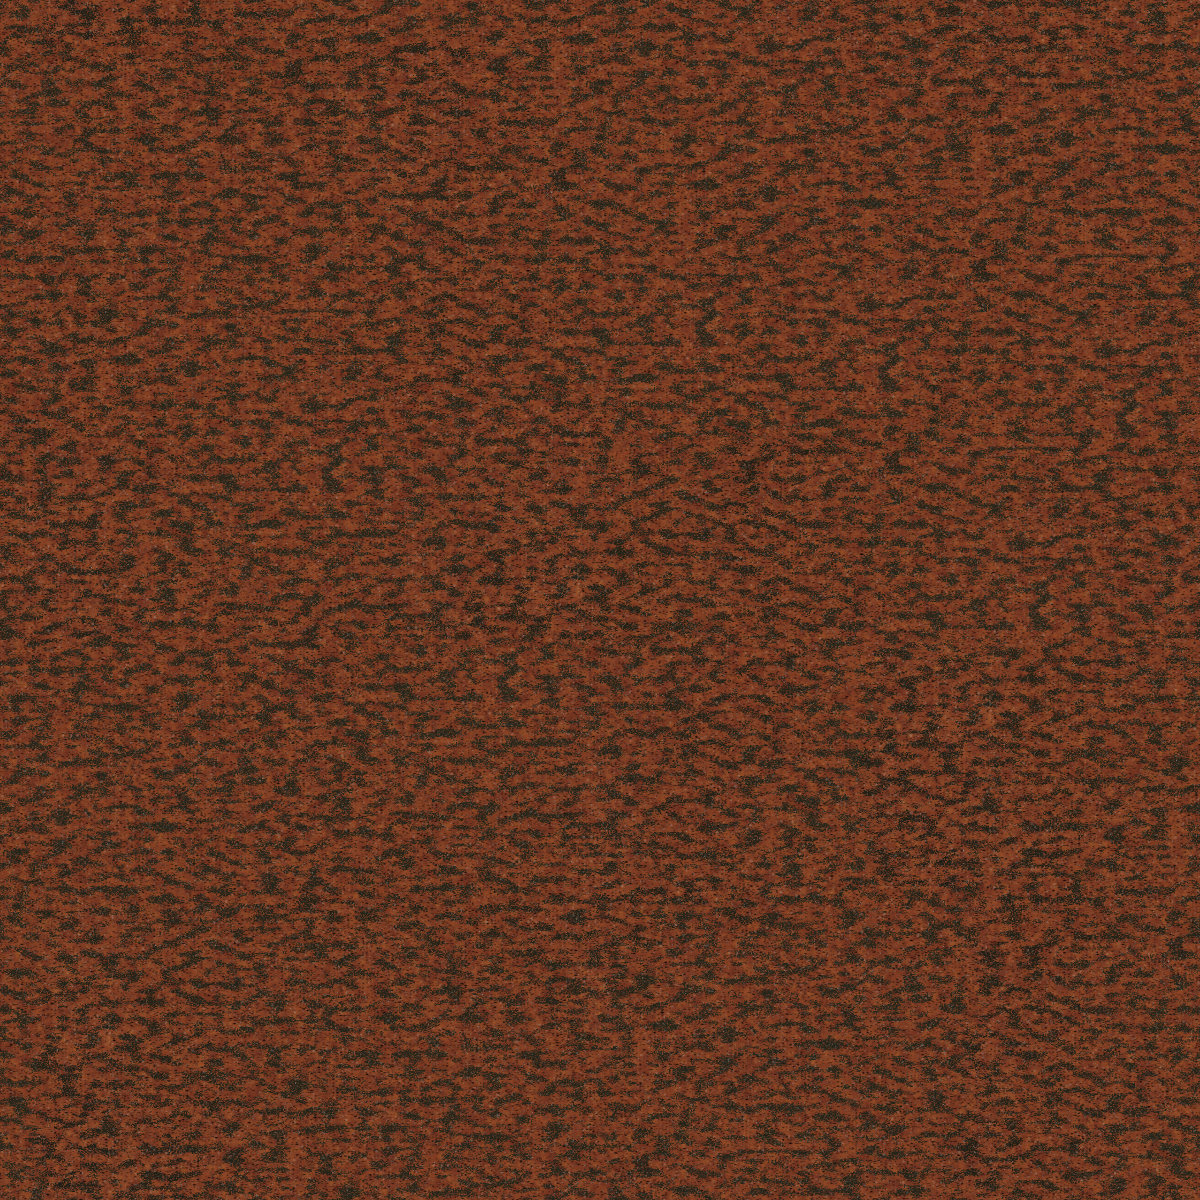 Red Granite Stone Seamless : Swtexture free architectural textures brown granite